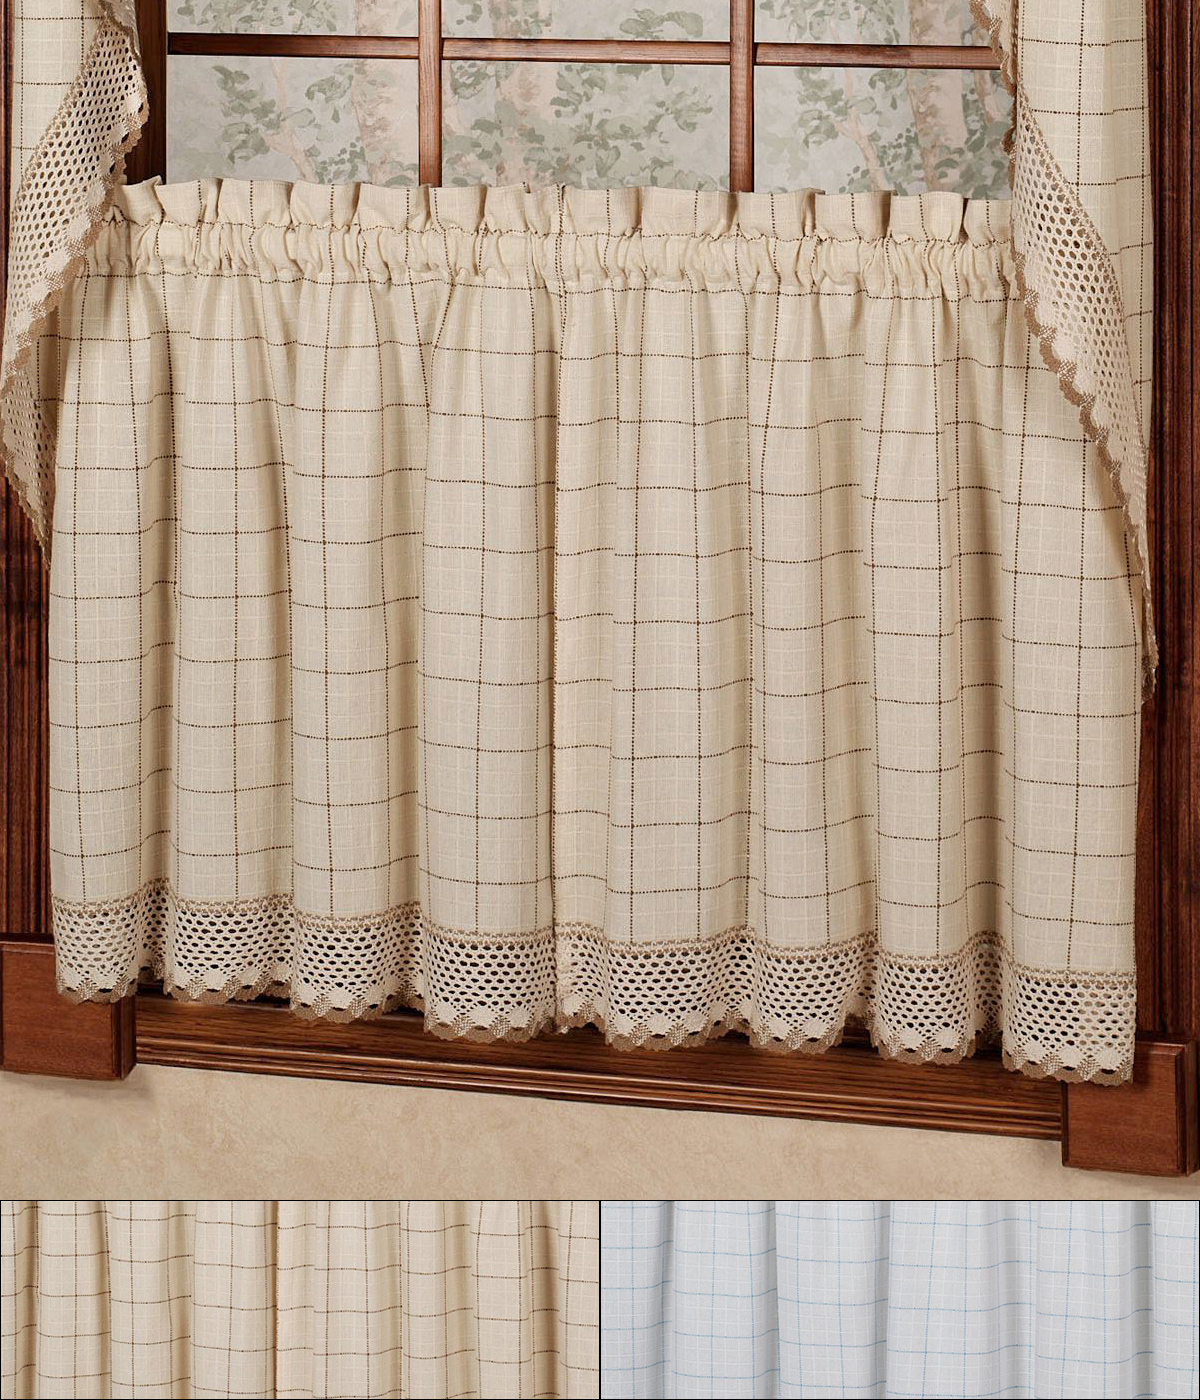 """Fashionable Details About Adirondack Cotton Kitchen Window Curtains – 24"""" X 60"""" Tier  Pair Intended For Cotton Classic Toast Window Pane Pattern And Crotchet Trim Tiers (Gallery 3 of 20)"""